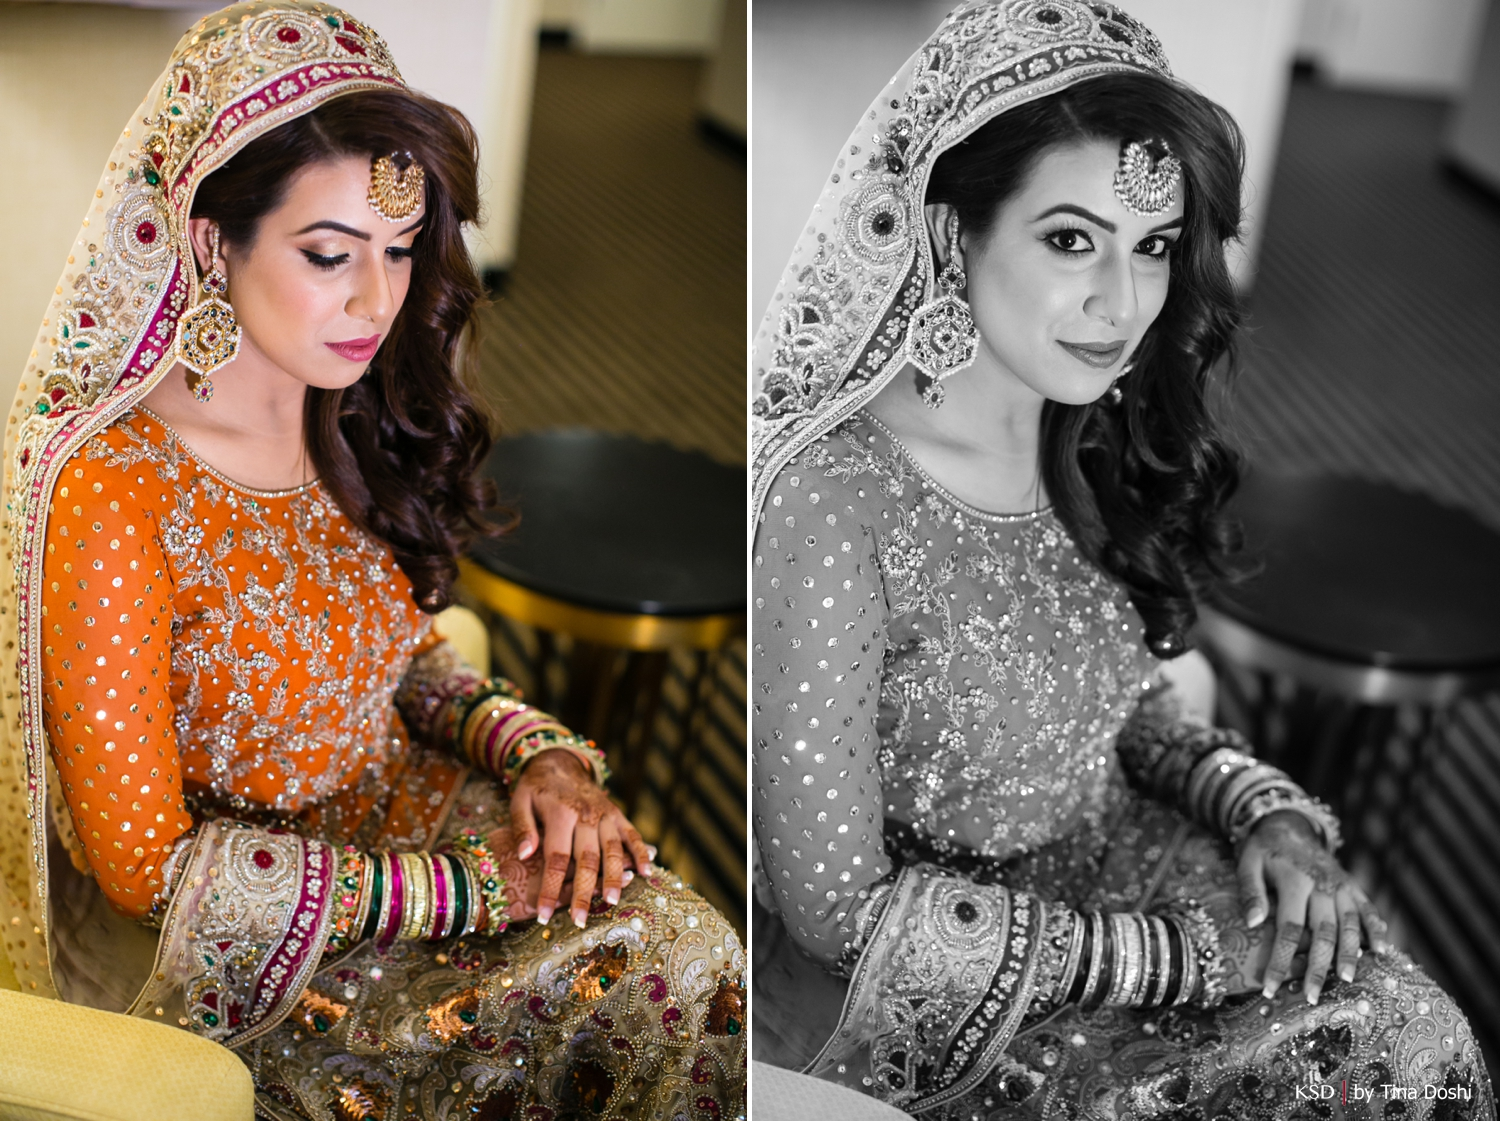 nj_south_asian_wedding_0010